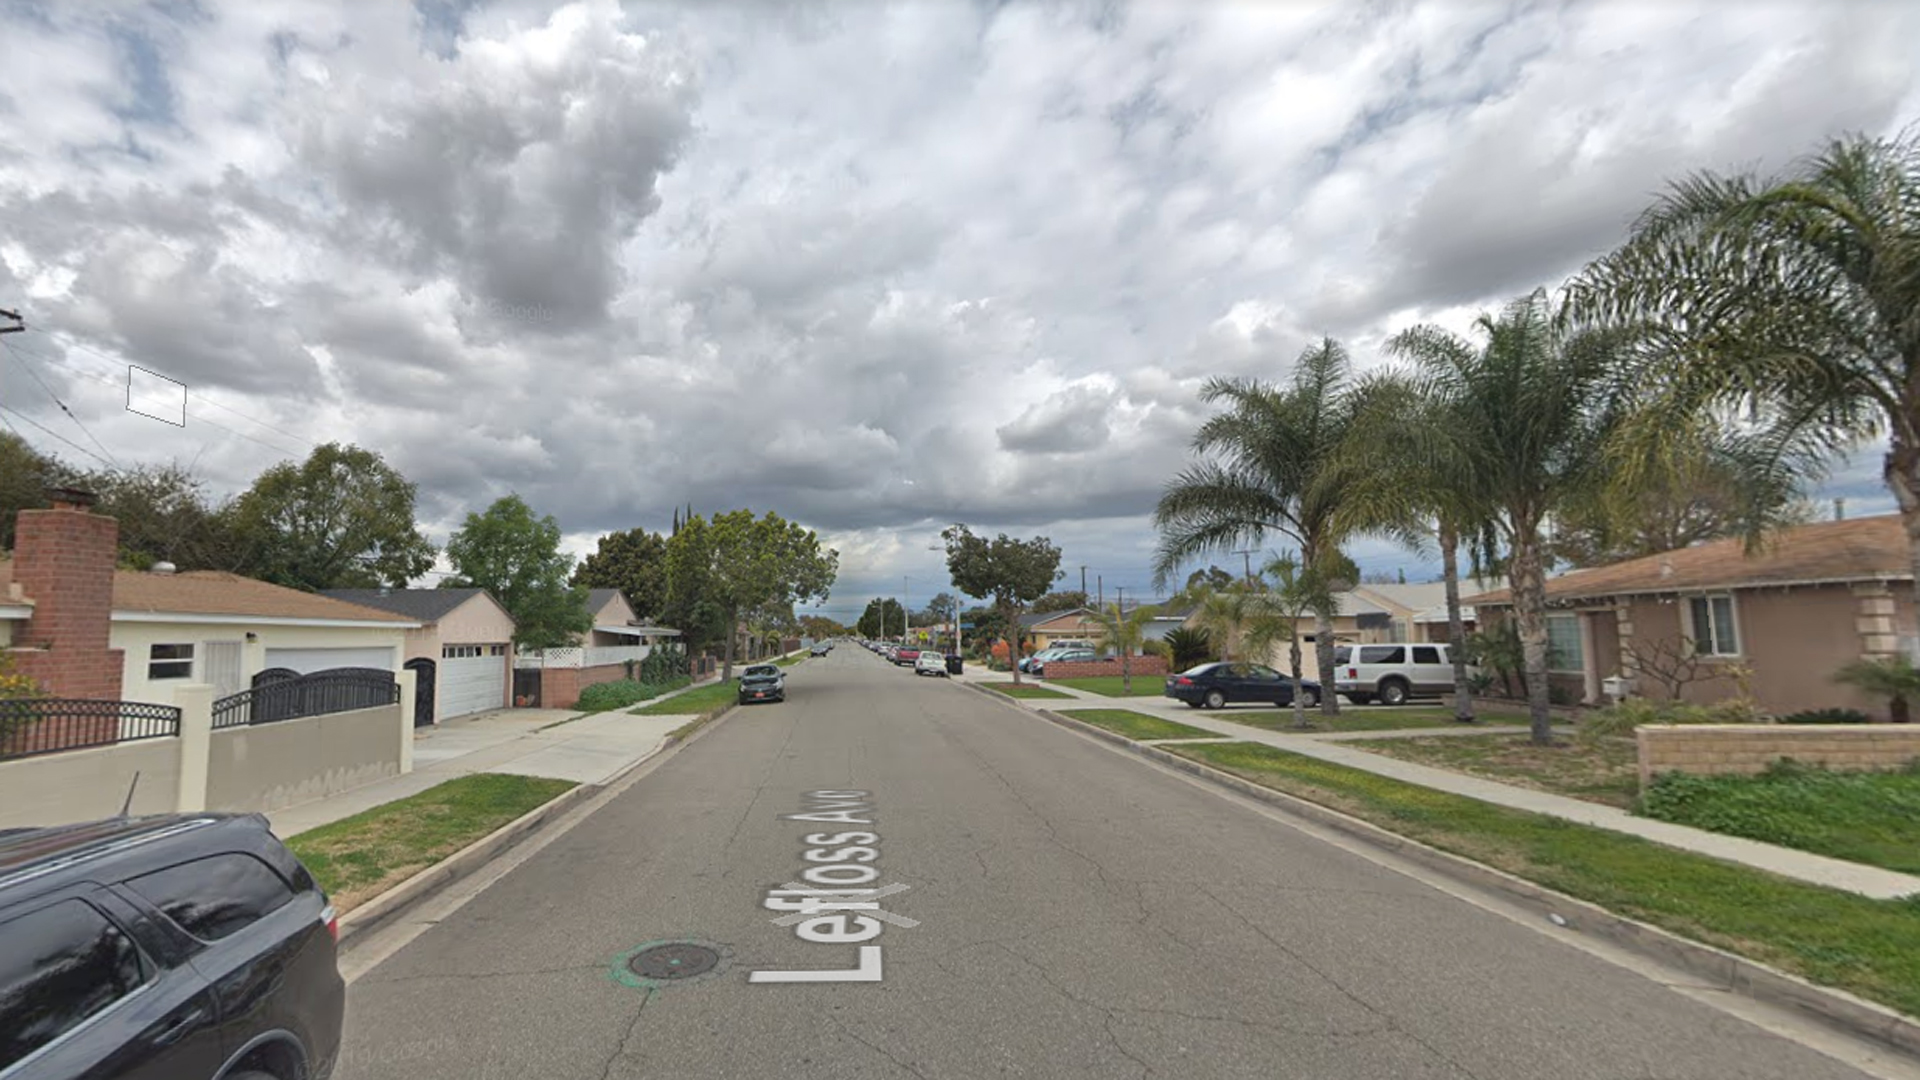 The 15400 block of Lefloss Avenue in Norwalk is shown in a Street View image from Google Maps.